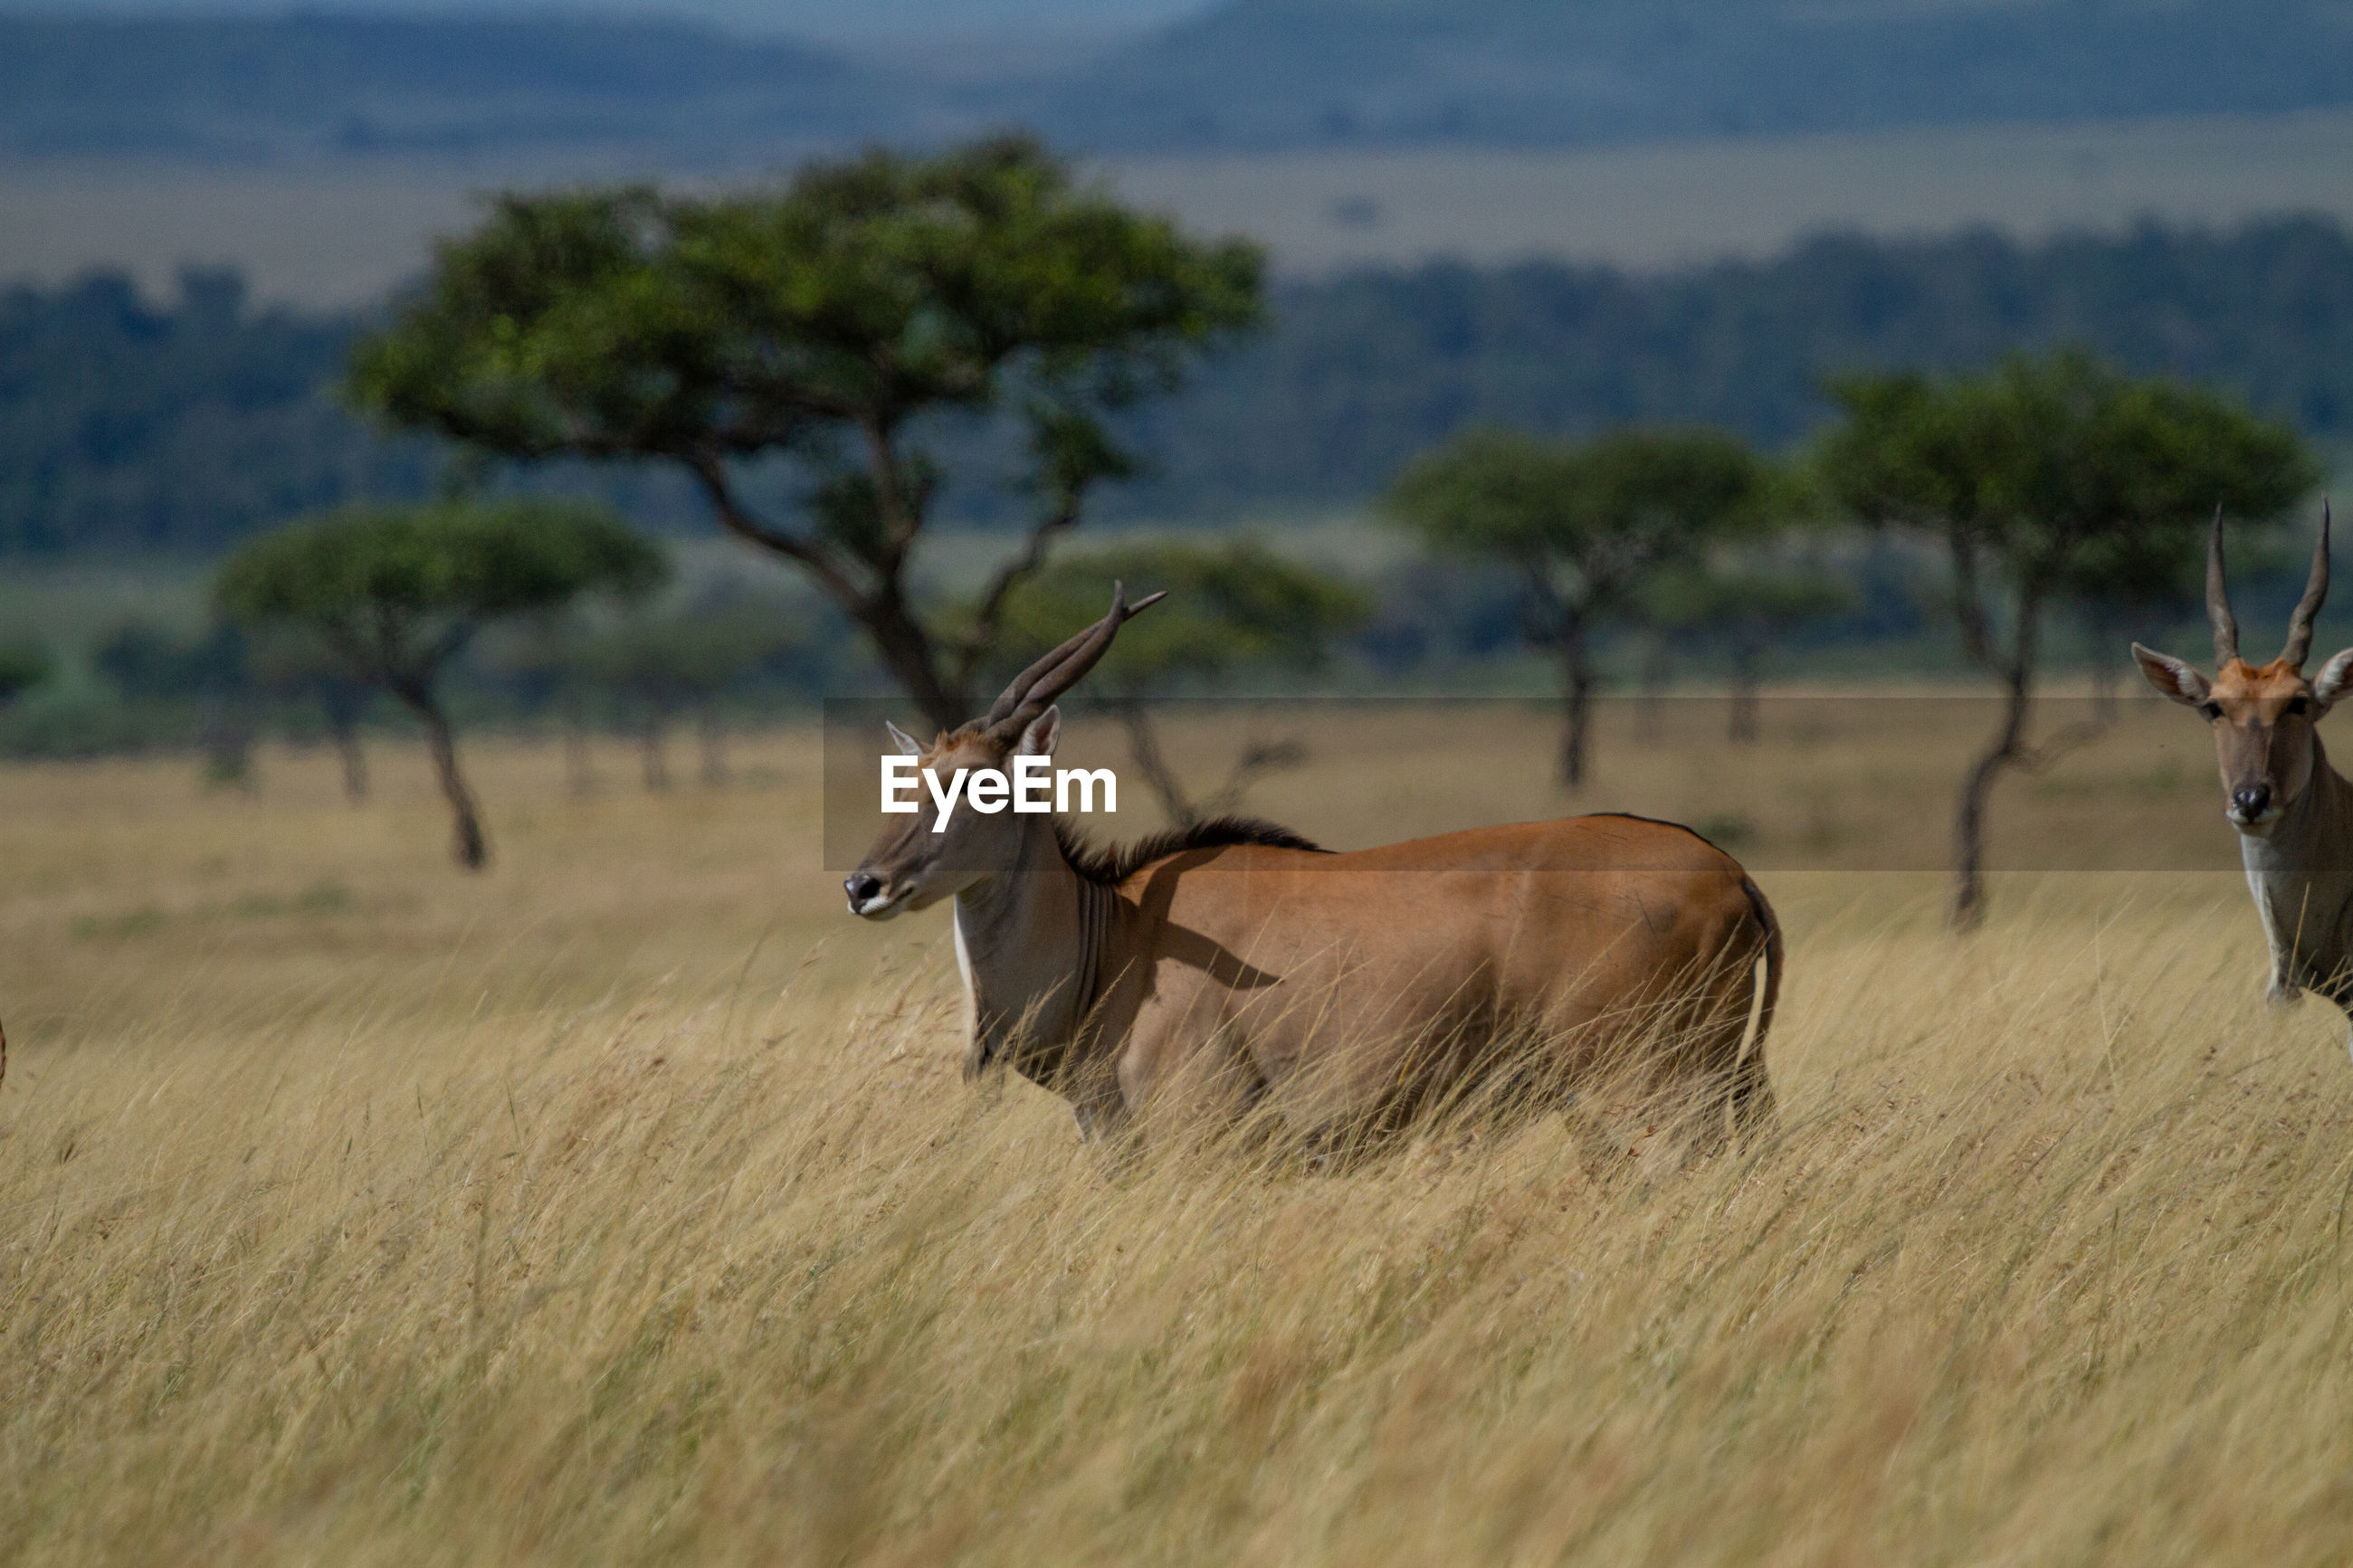 Eland , the largest antelope in the world, in a field of tall dry grass